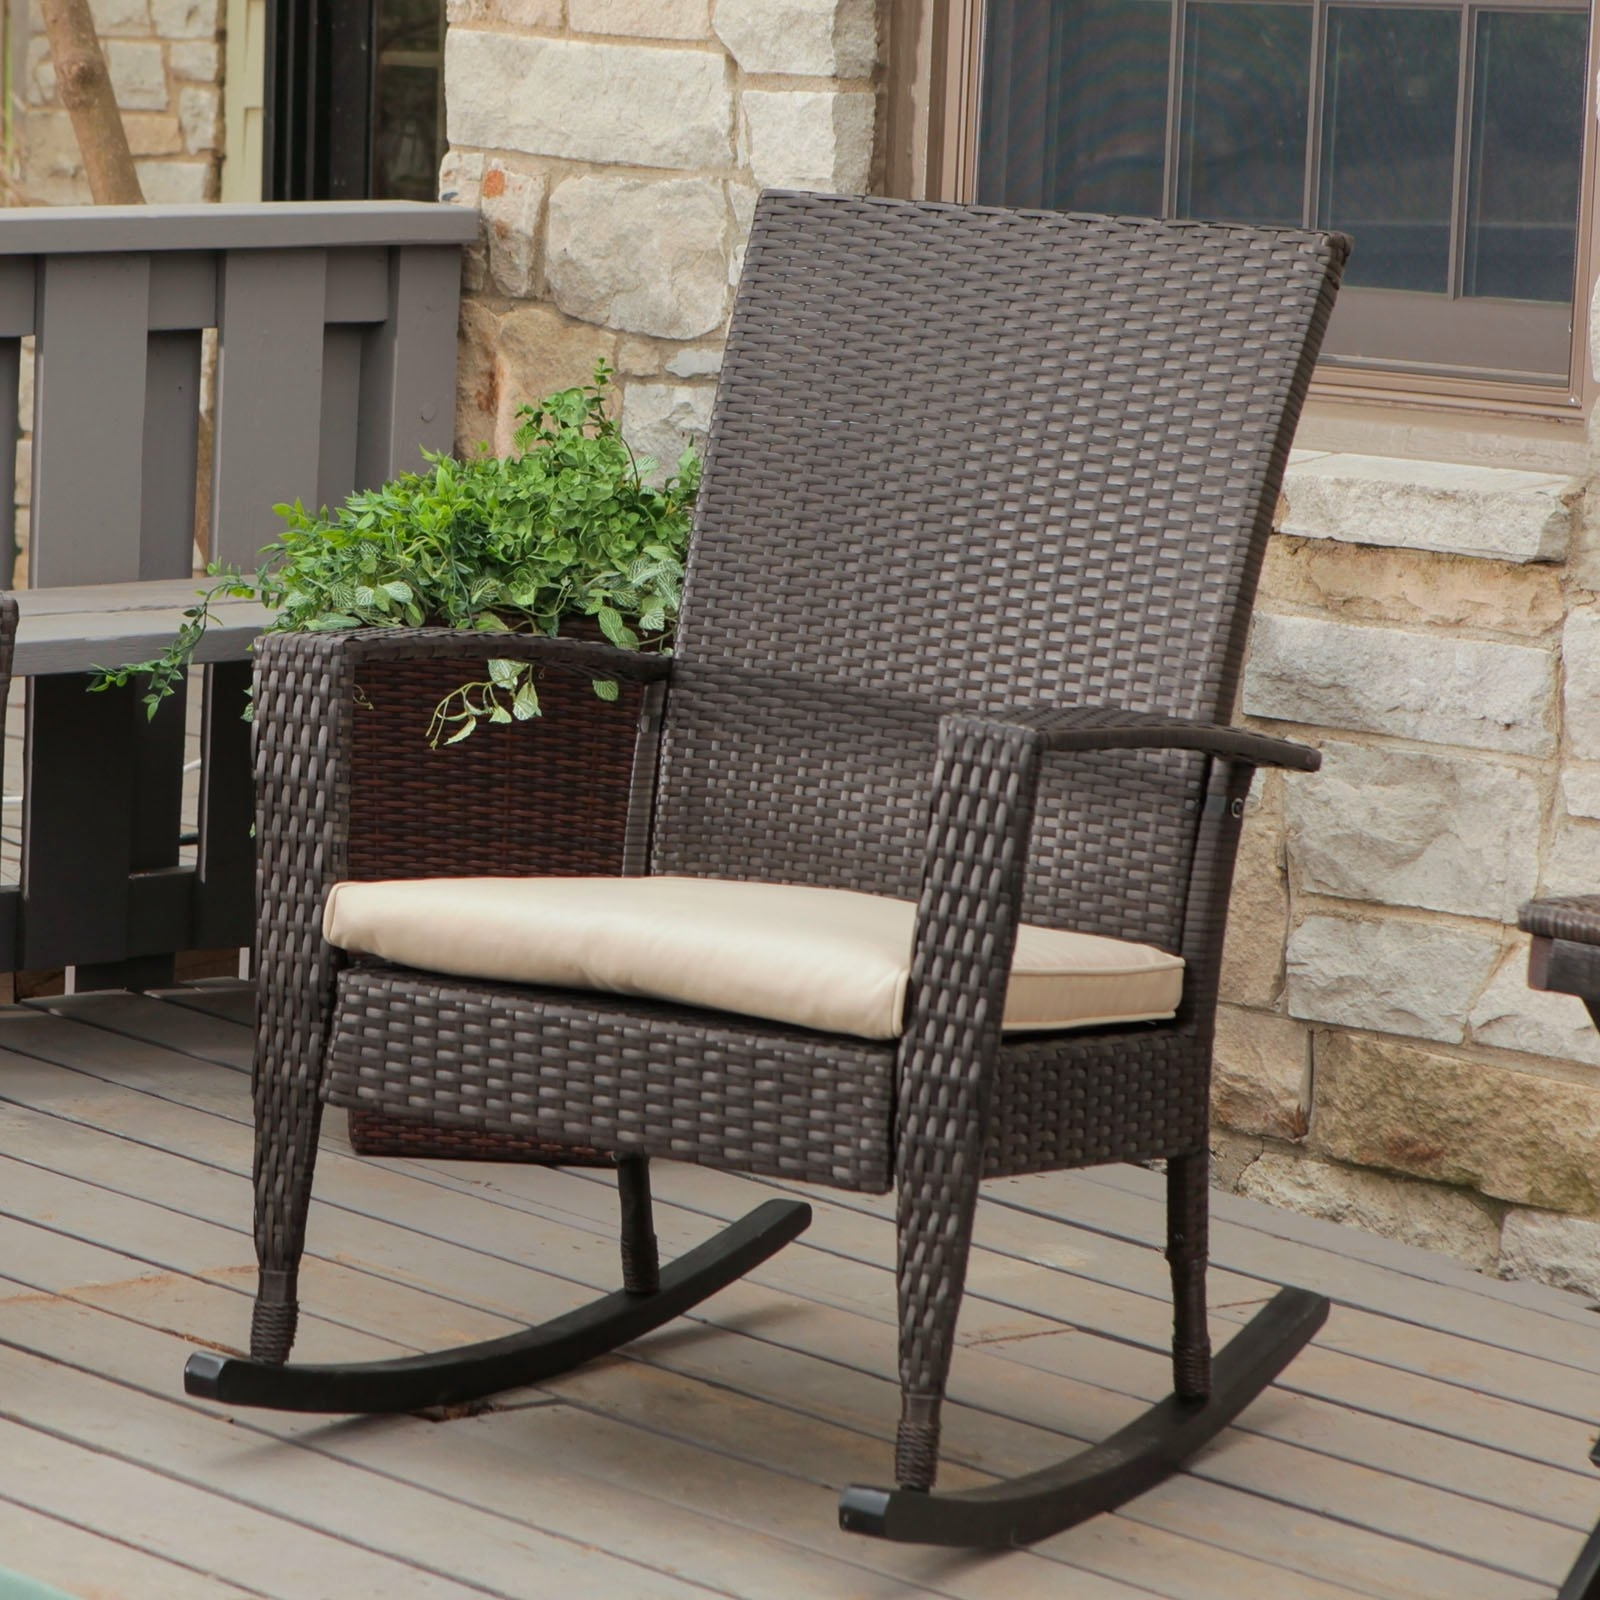 Resin Patio Rocking Chairs : Spectacular And Sensational Patio Throughout Most Recent Plastic Patio Rocking Chairs (View 11 of 15)